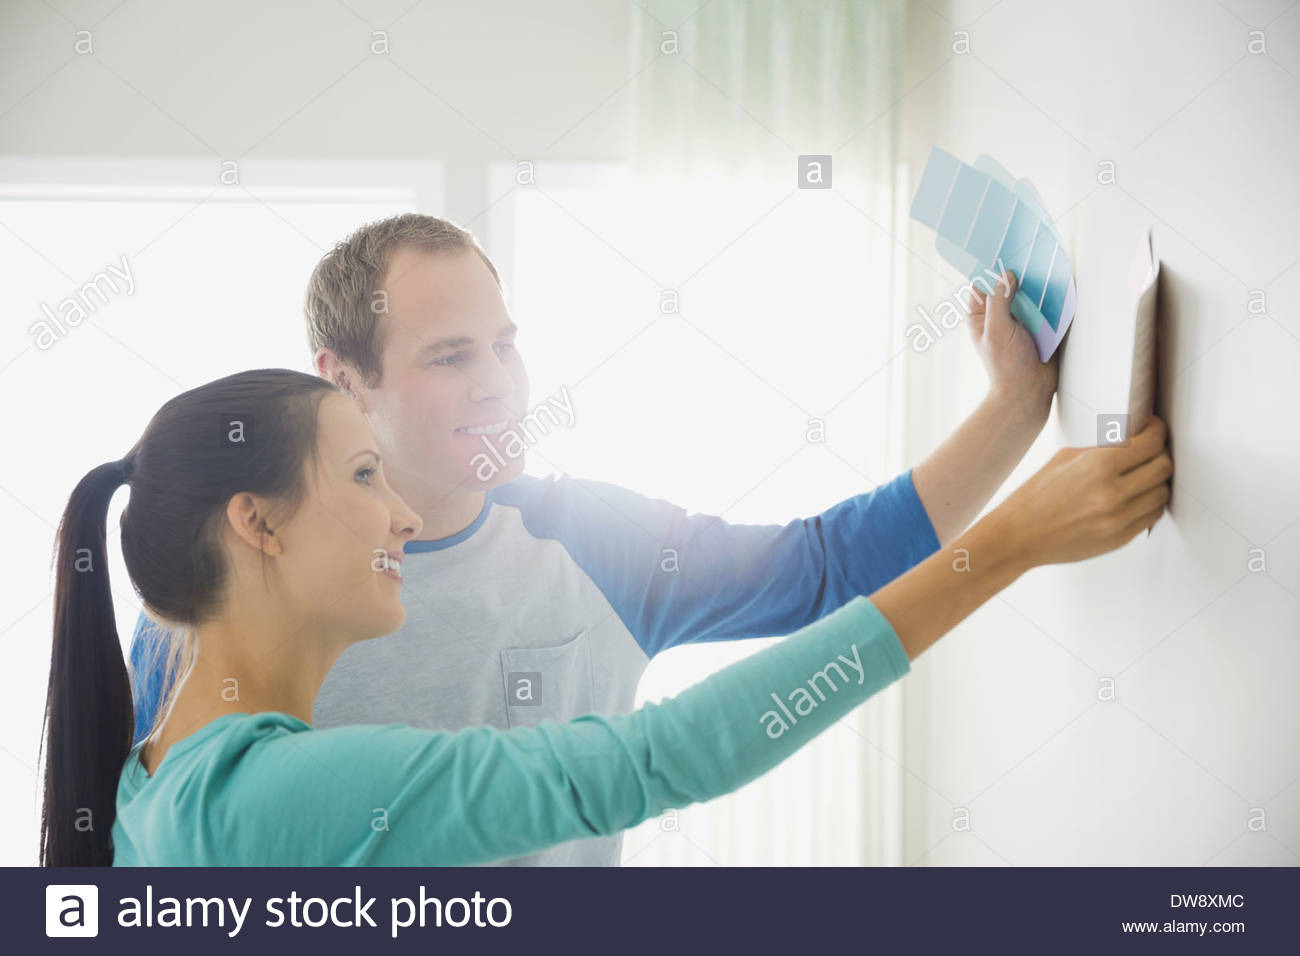 Young couple holding color swatches against bare wall - Stock Image